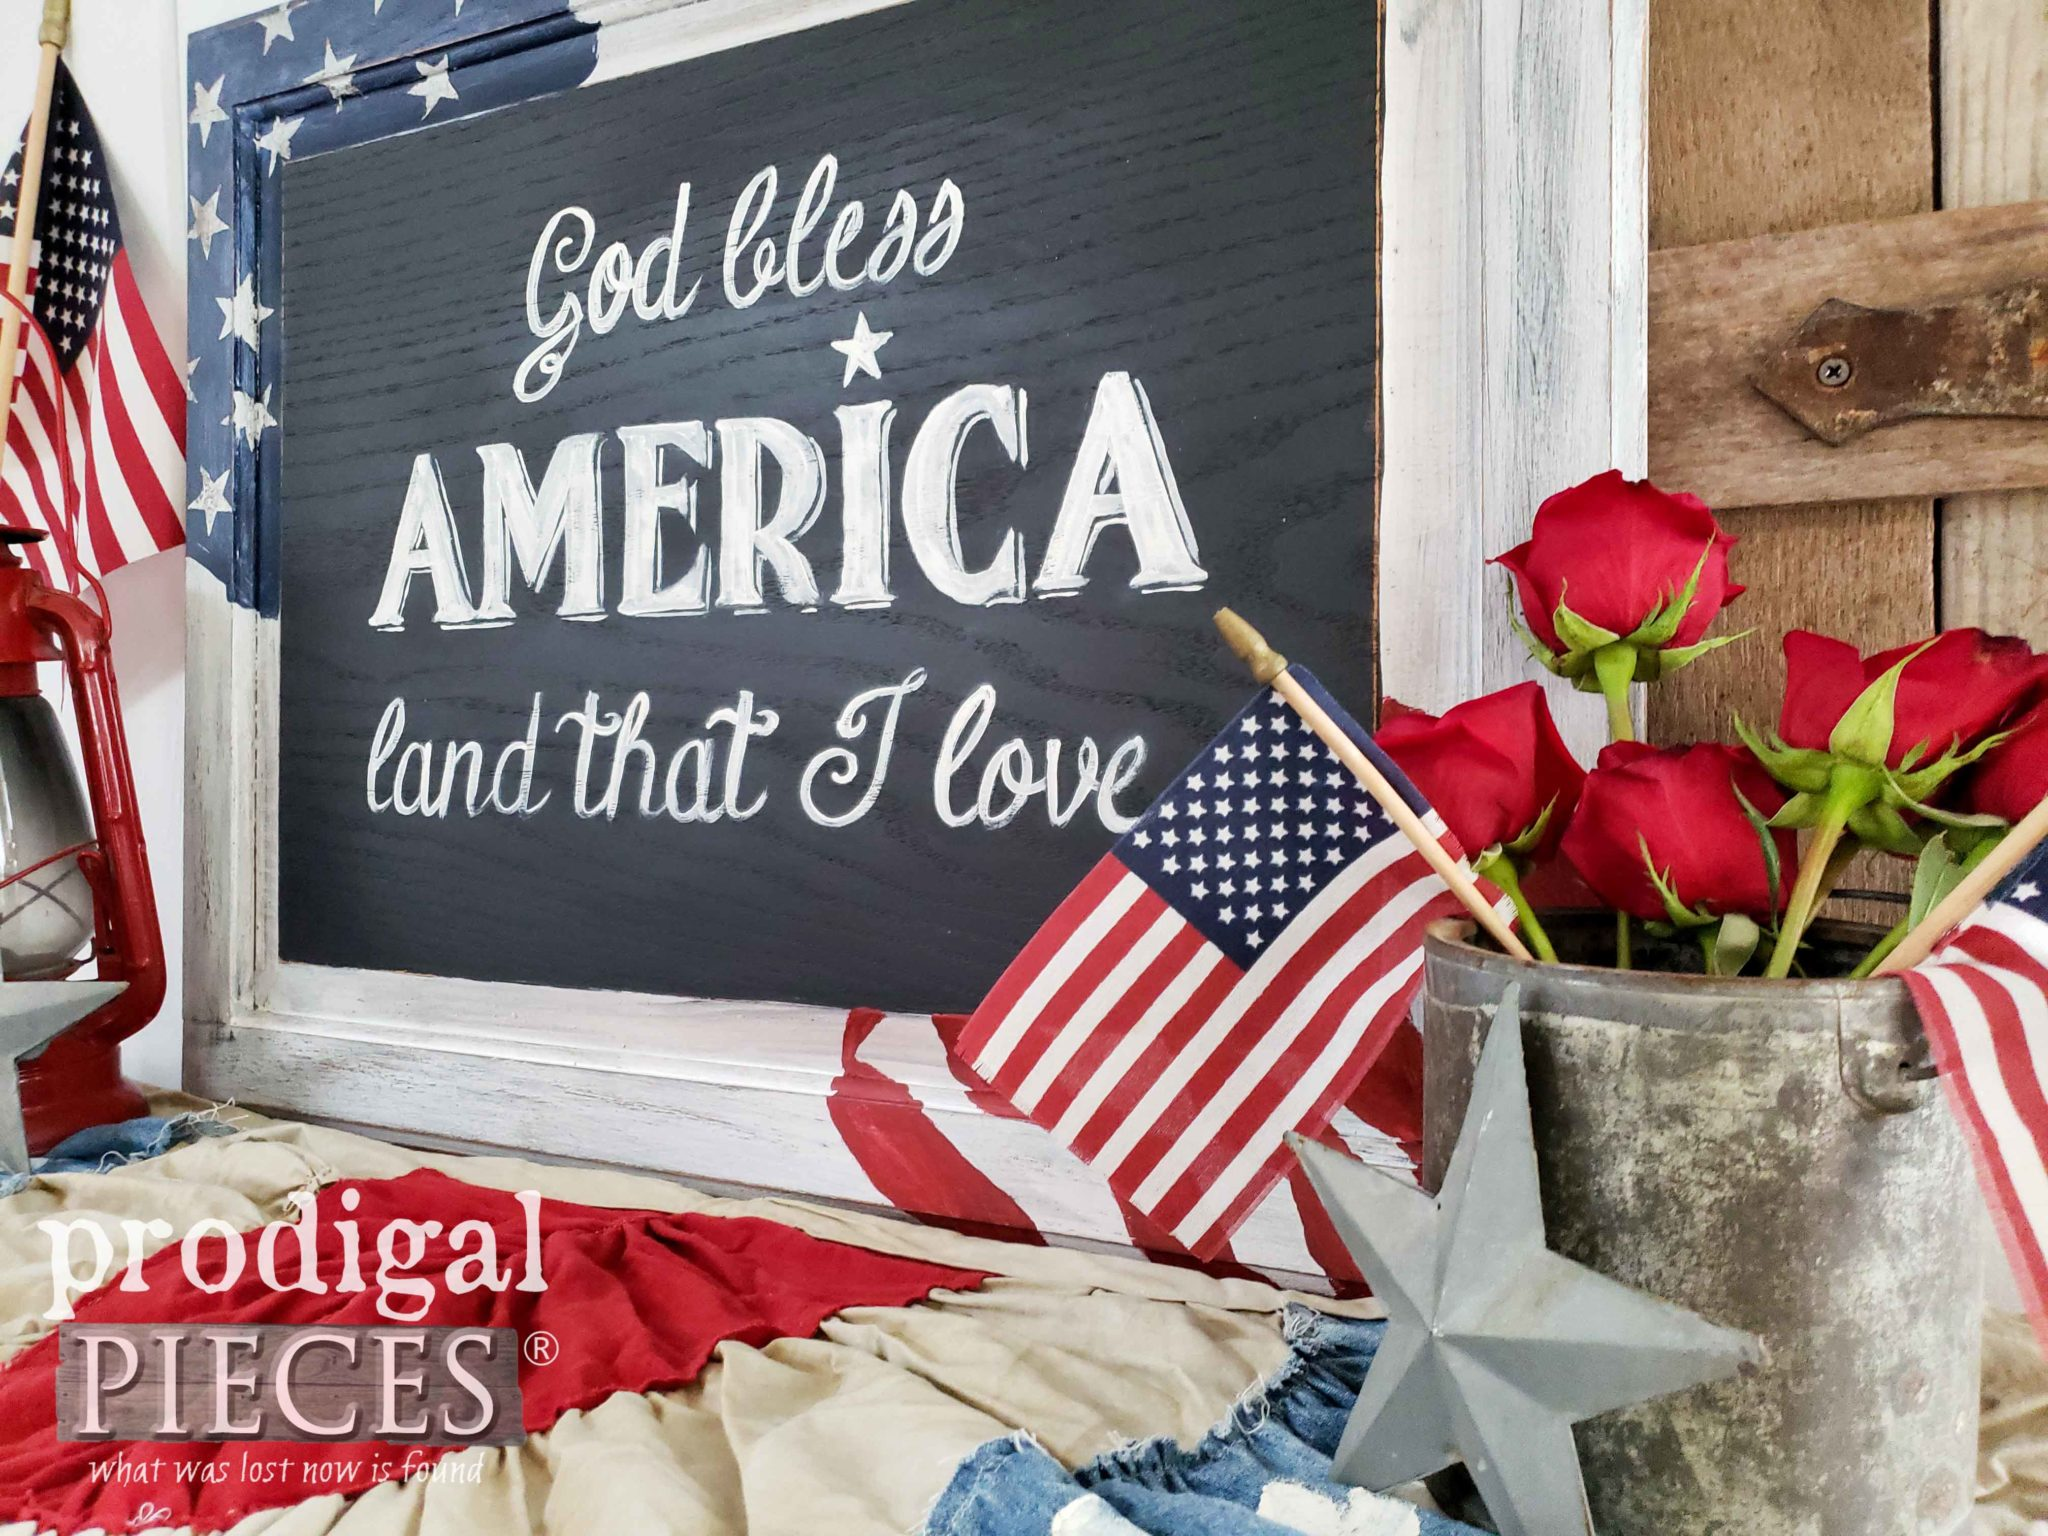 Farmhouse Style Americana Decor for 4th of July Celebration | prodigalpieces #prodigalpieces #diy #farmhouse #4thofJuly #home #homedecor